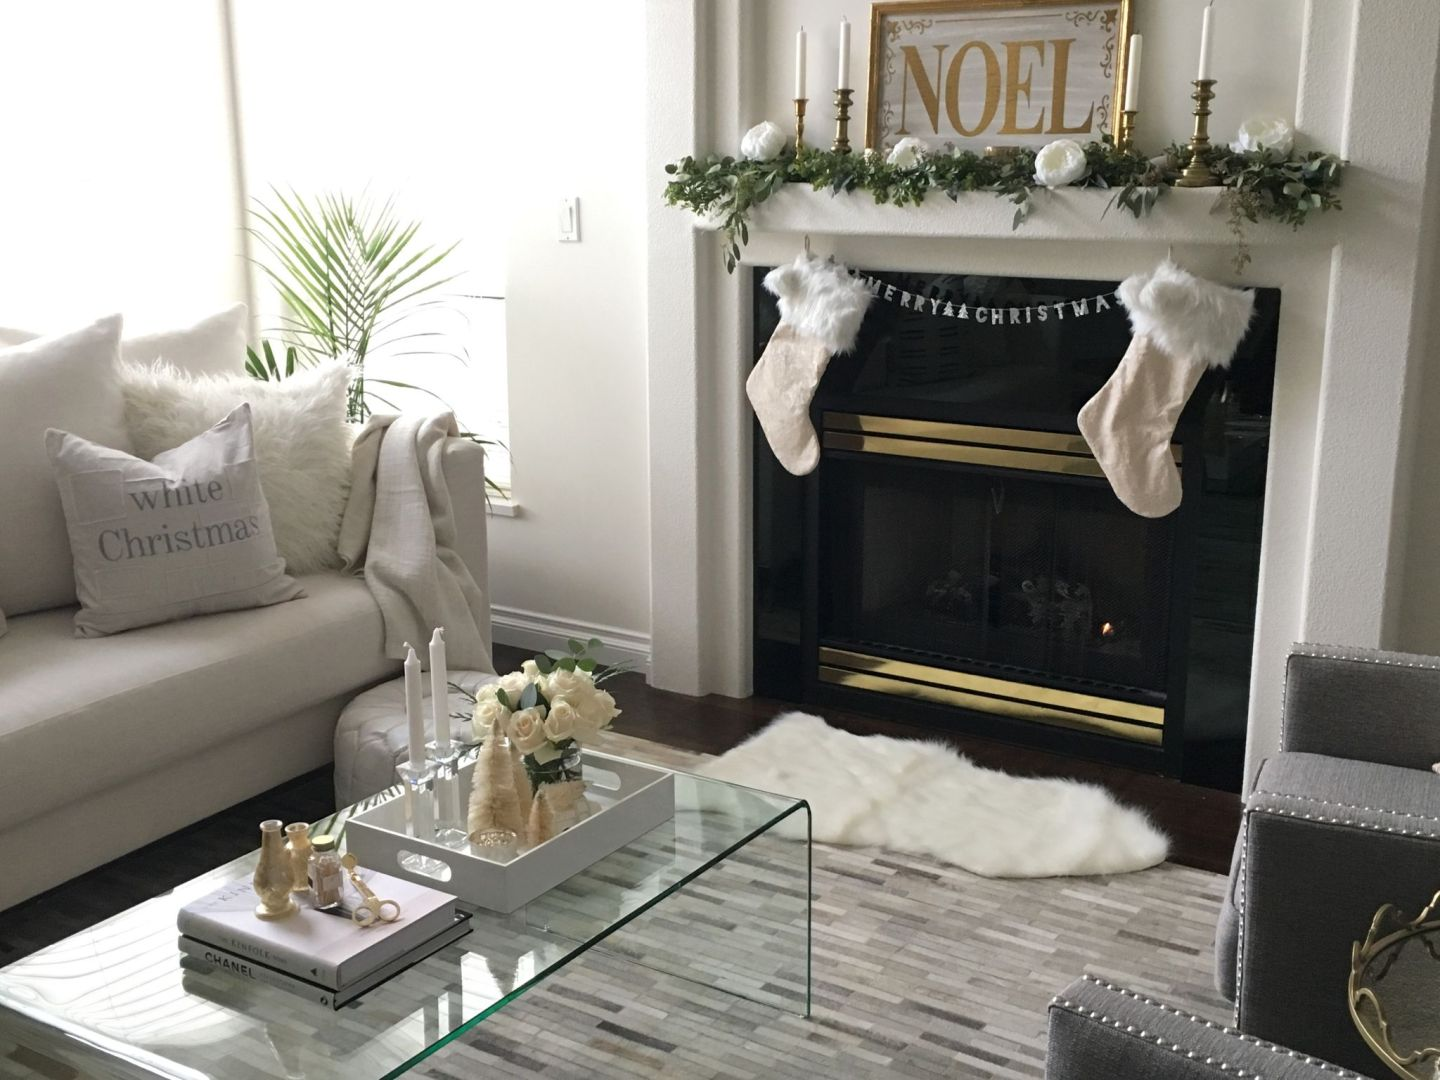 Holiday Home Tour – A Natural Christmas